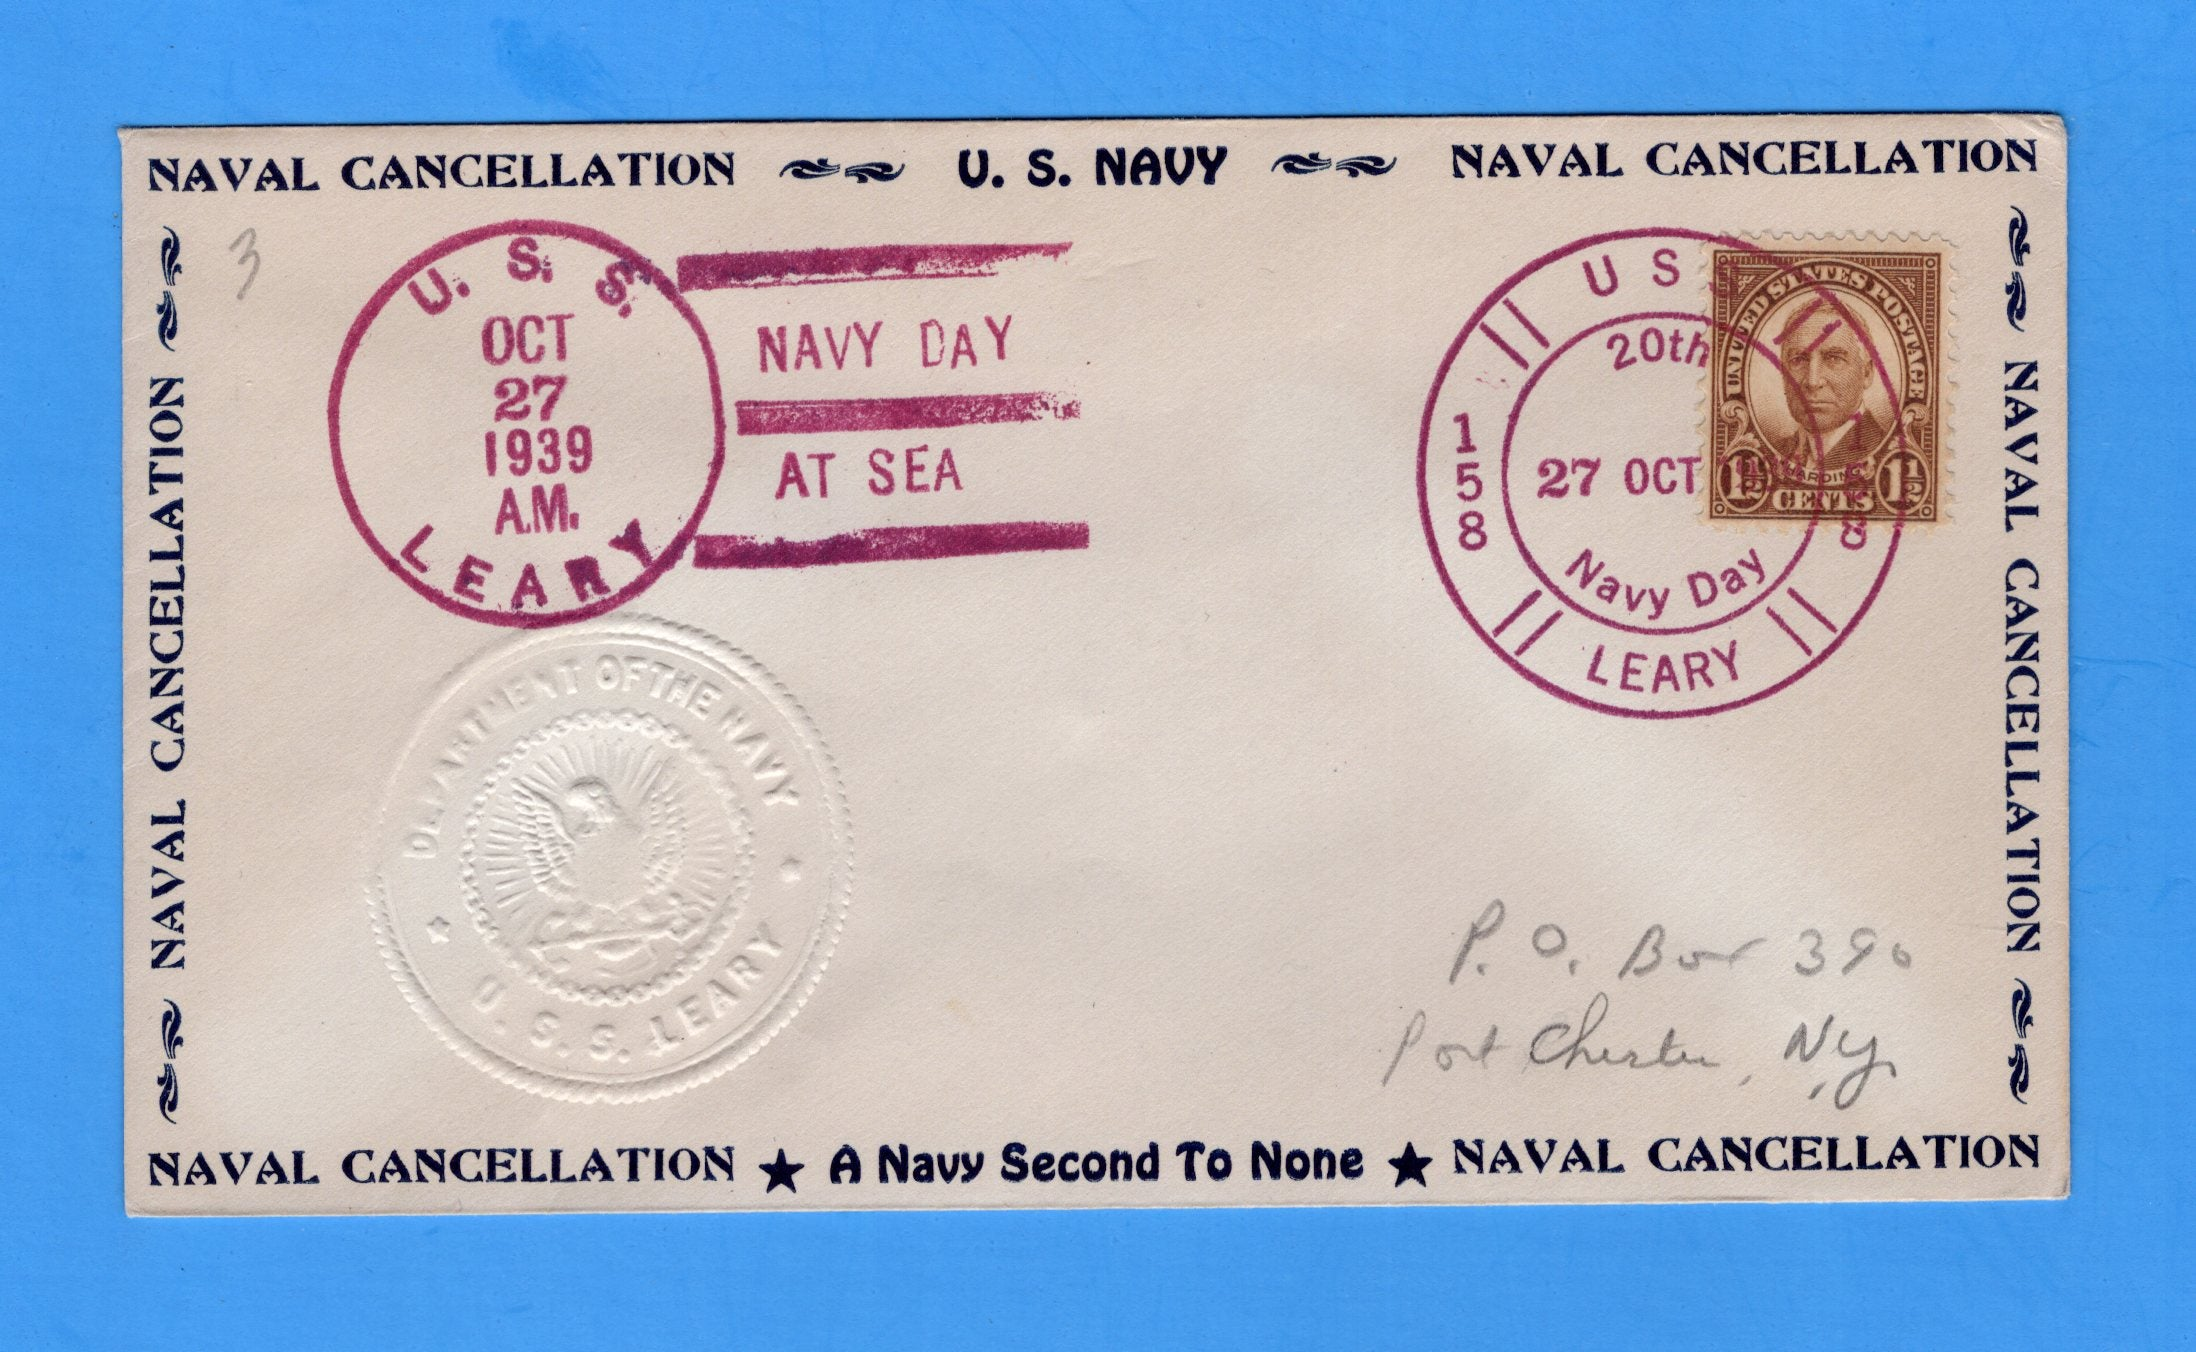 USS Leary DD-158 Navy Day October 27, 1939